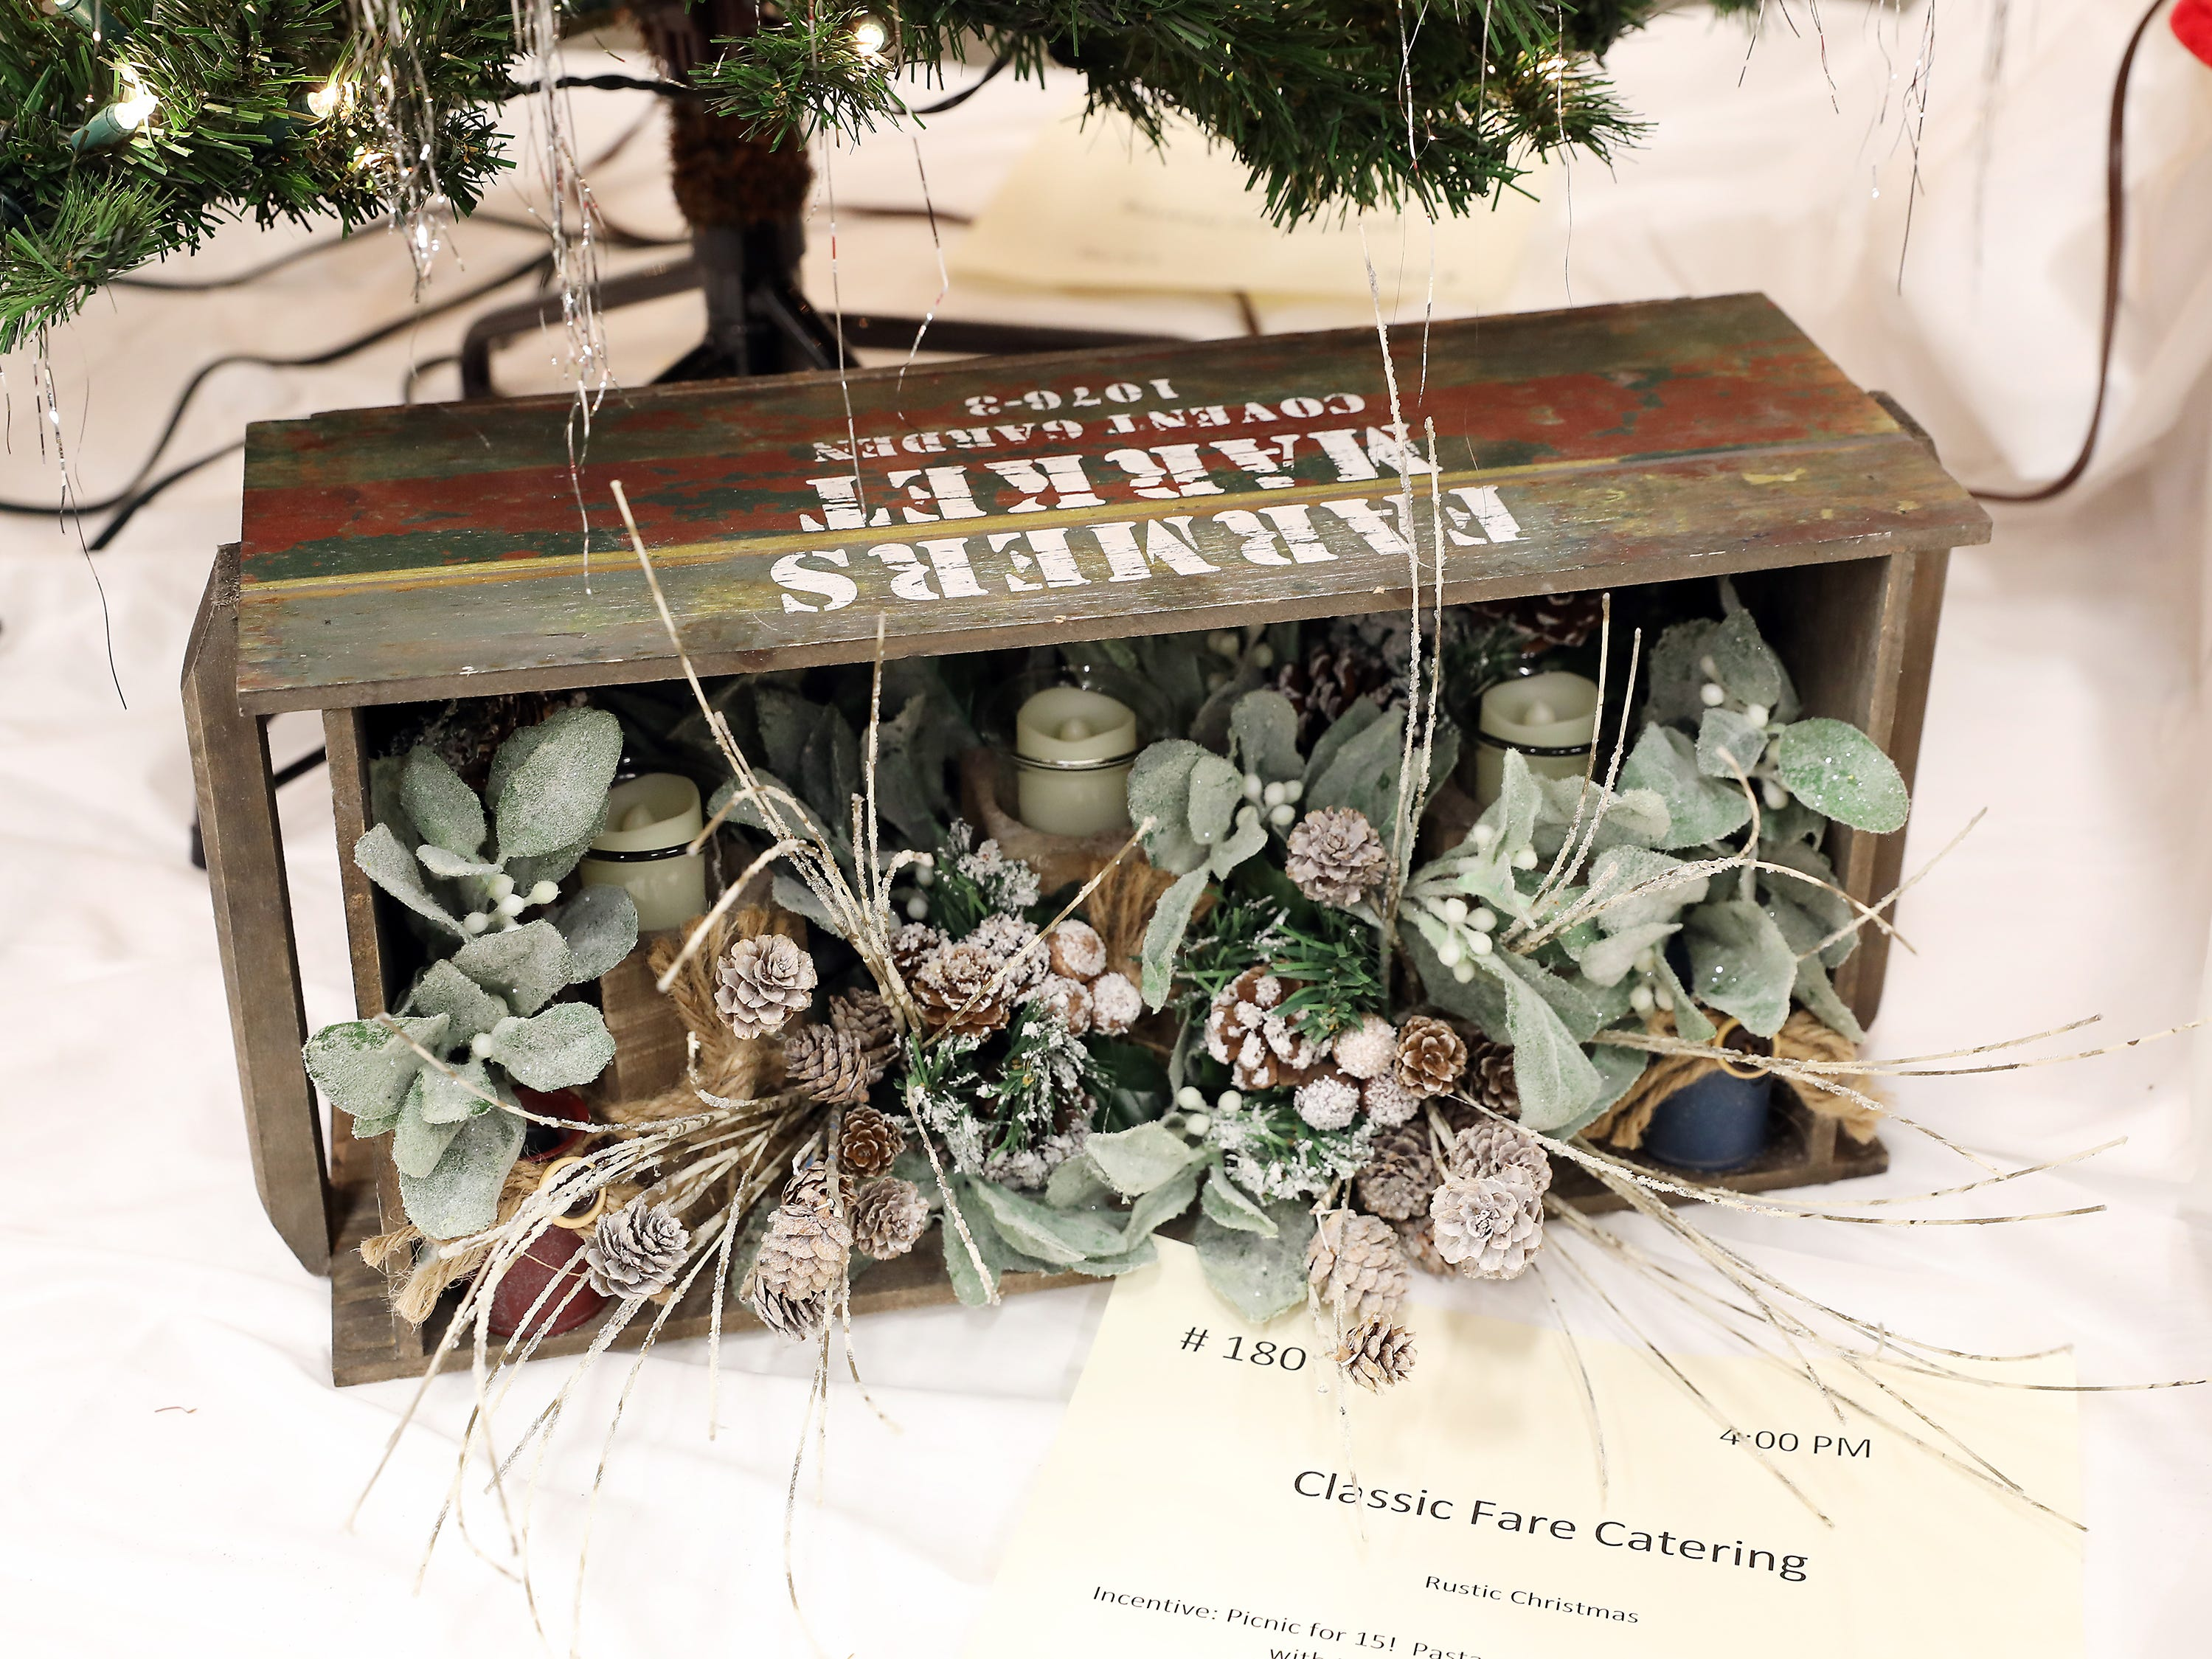 1804:00 PMClassic Fare CateringOtherRustic ChristmasFarmhouse style bowl with candles and winter greenery.Picnic for 15!  Pasta salad, baked beans, grilled burgers with toppings, hot dogs and cookies.